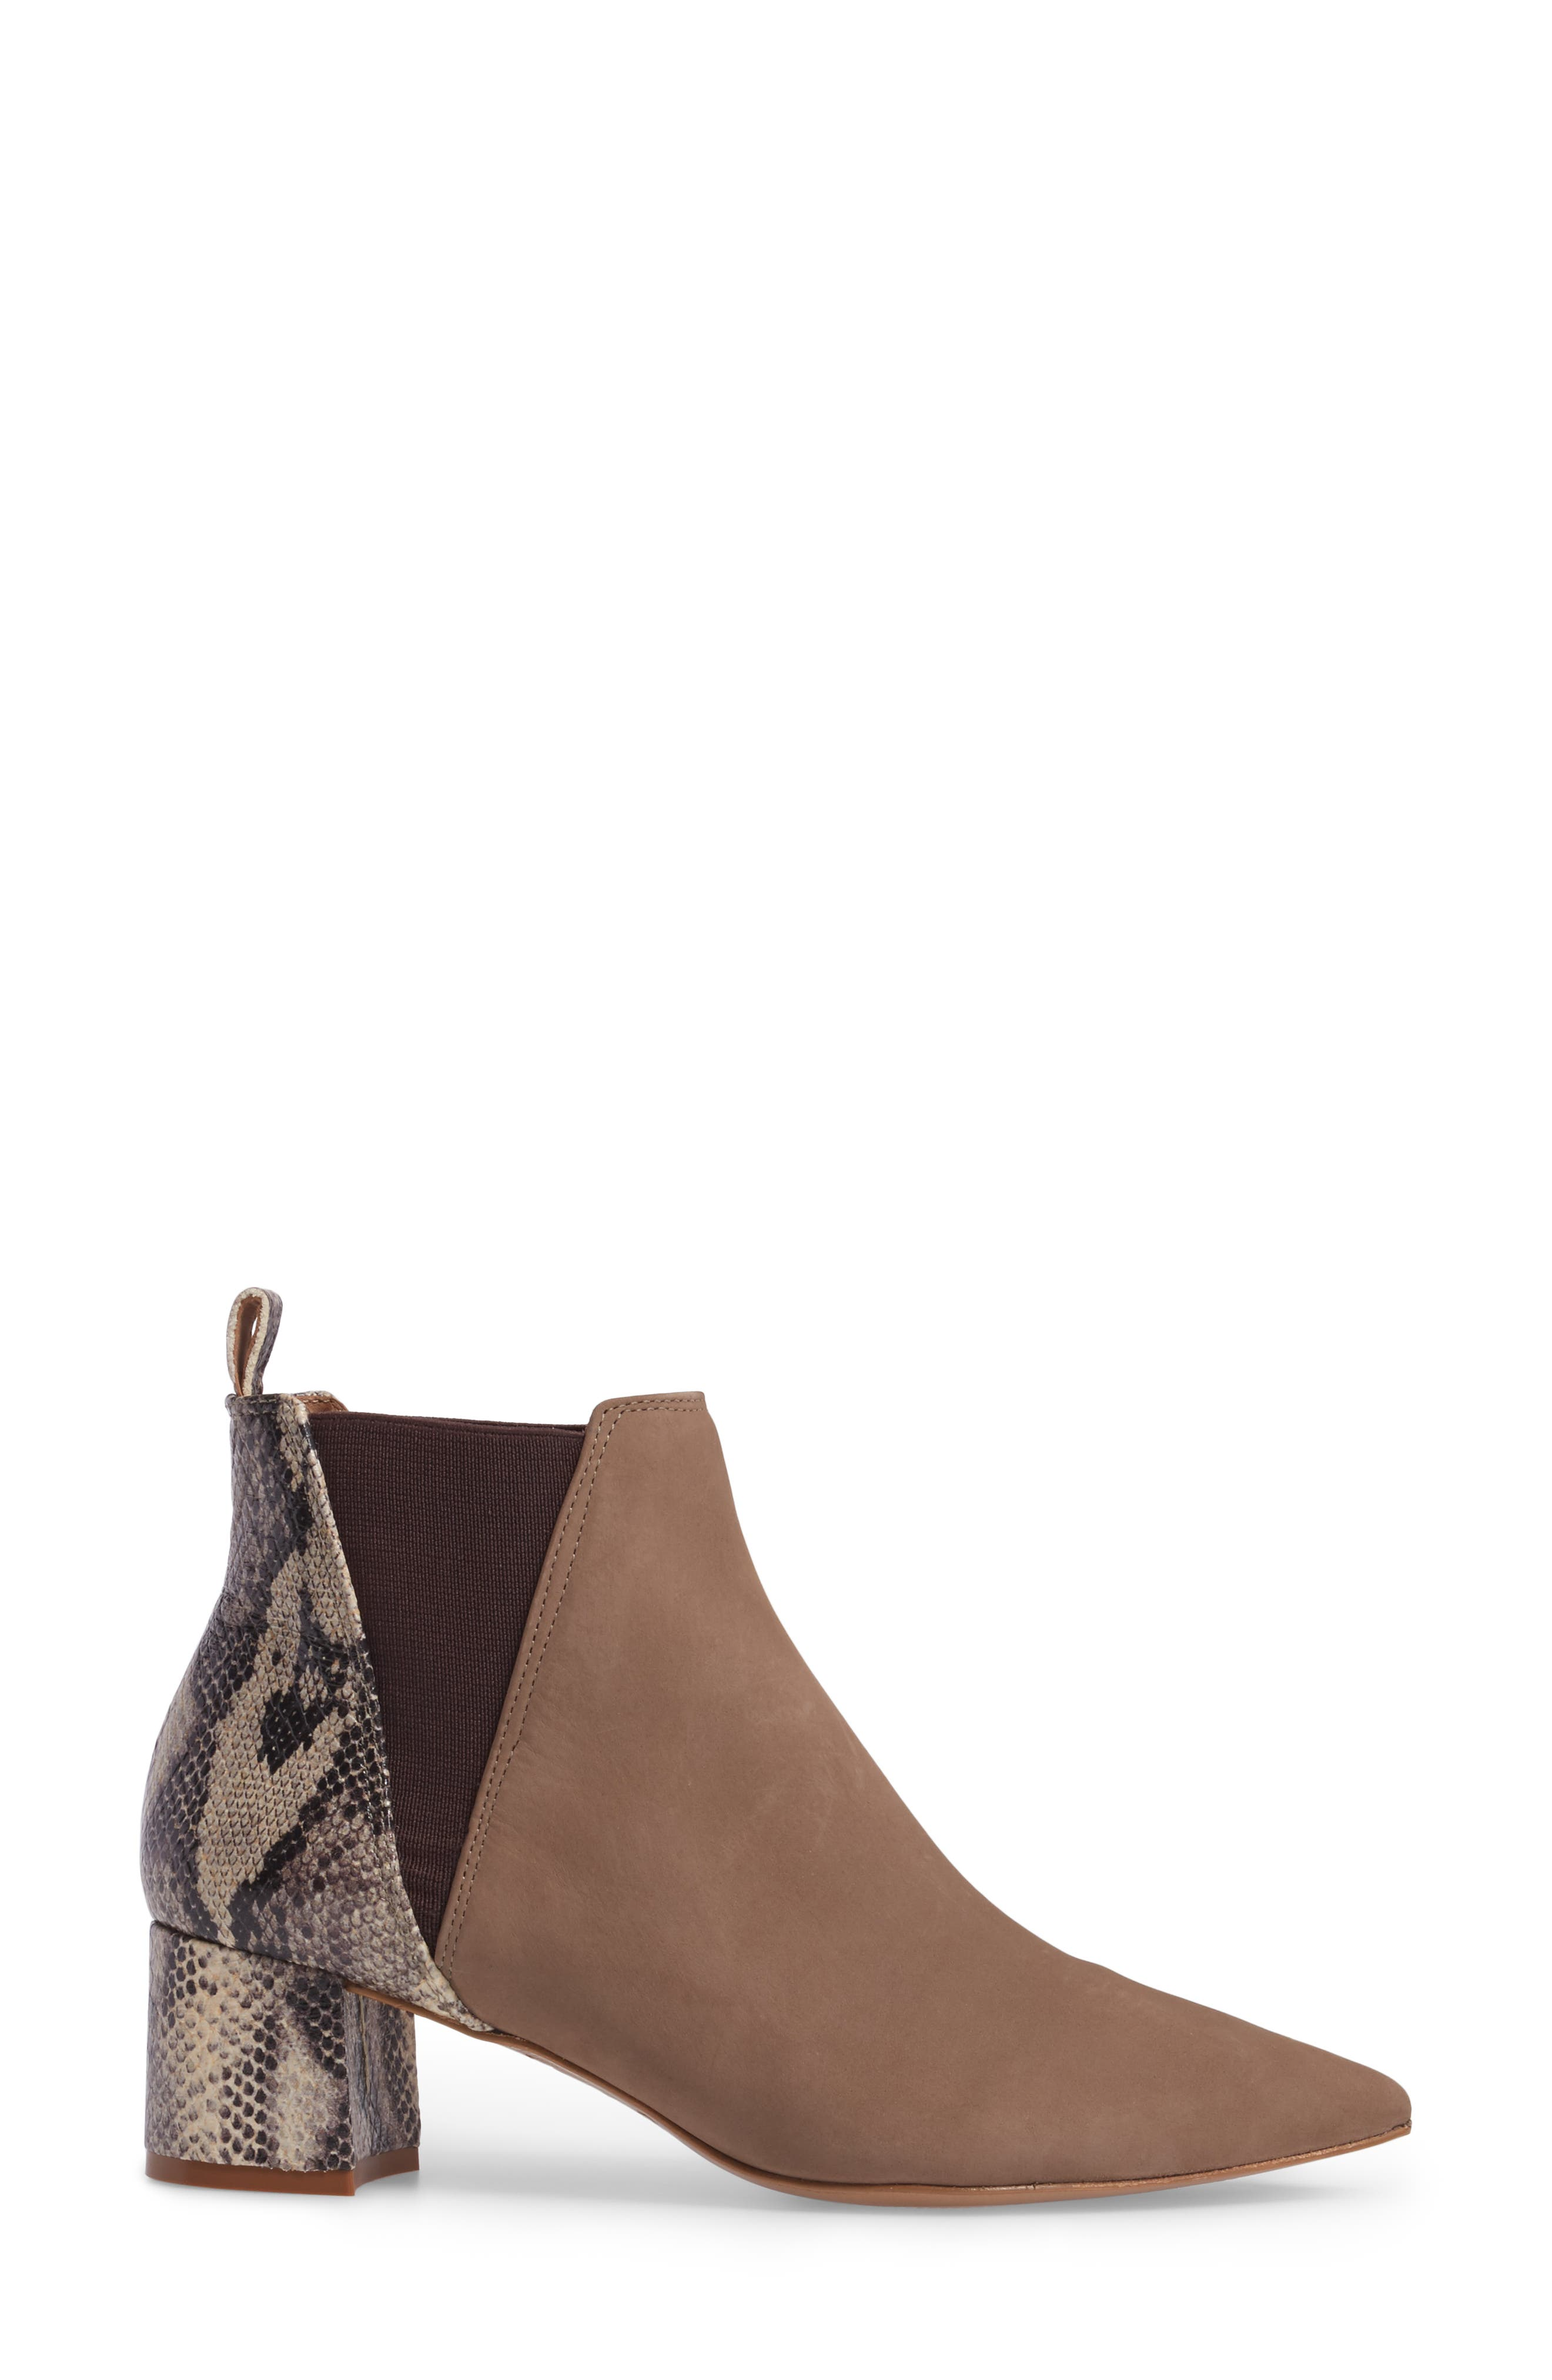 Renita Pointy Toe Chelsea Bootie,                             Alternate thumbnail 3, color,                             Taupe Snake Print Suede